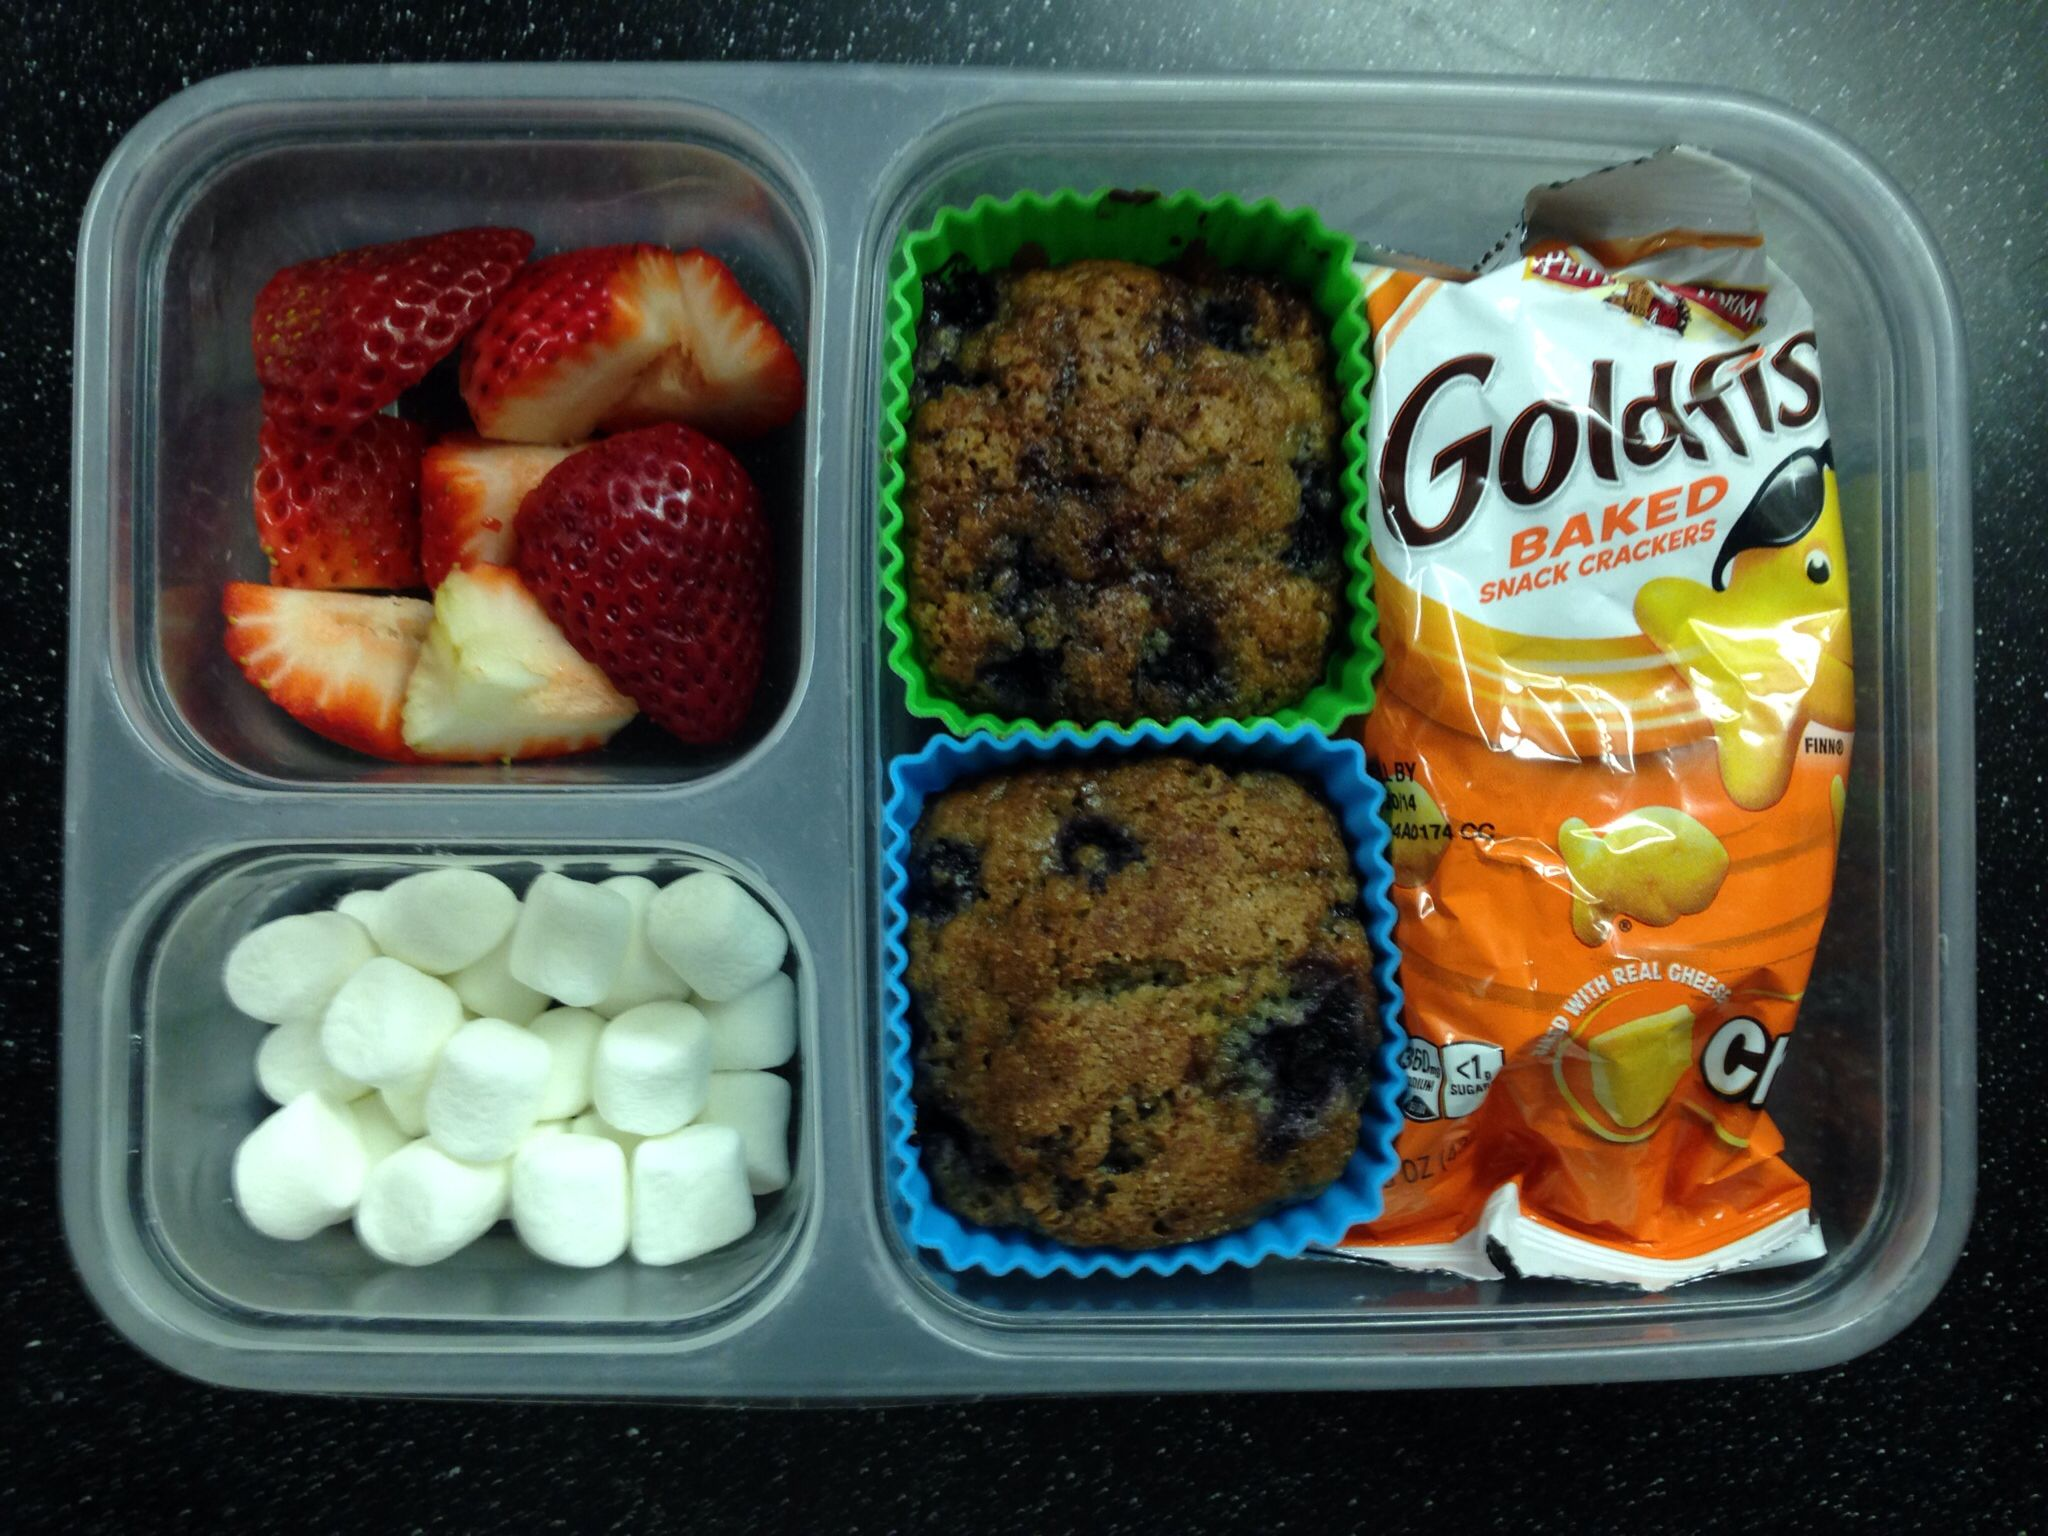 Blueberry oat muffins, goldfish crackers, strawberries and mini marshmallows :)